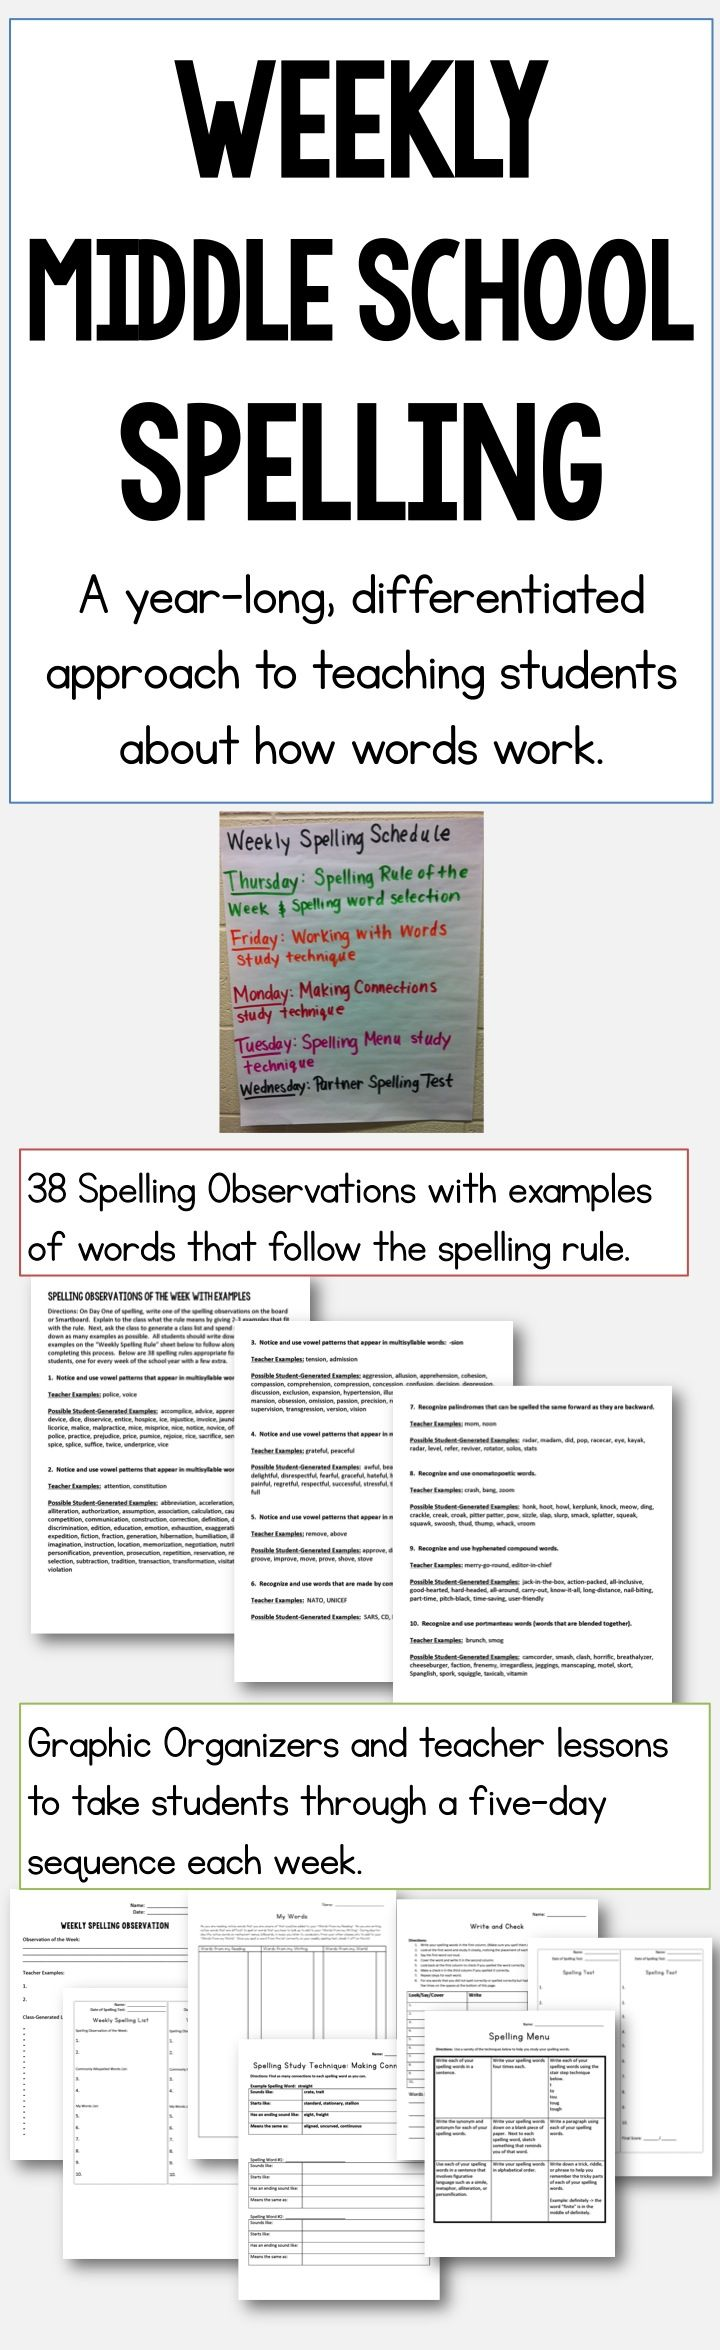 Weekly Middle School Spelling program with 38 spelling principles to teach students (one per week), options for differentiation, and detailed lessons and graphic organizers for each week's activities. ($)